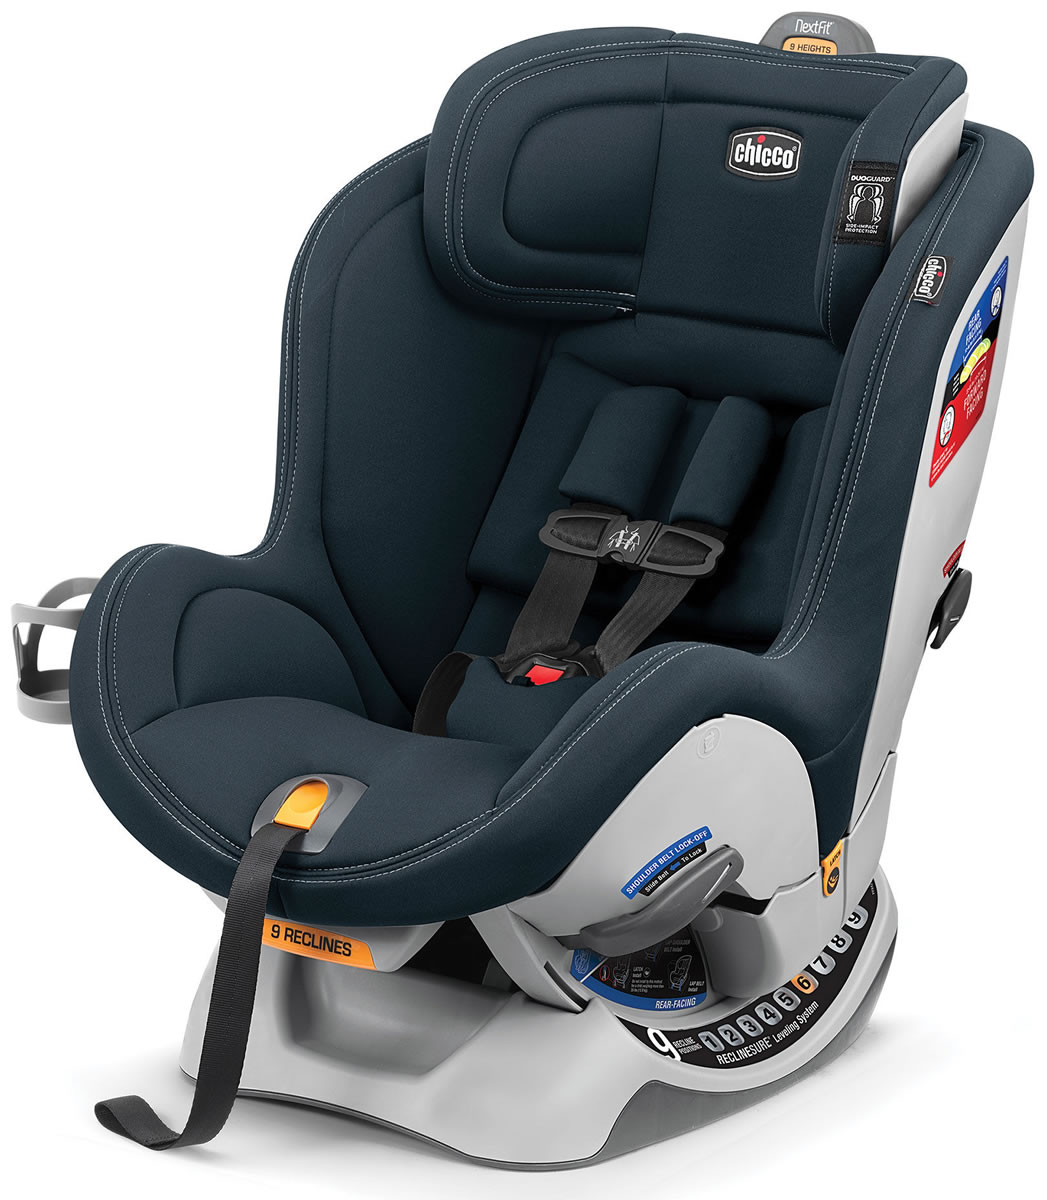 Chicco NextFit Sport Convertible Car Seat - Shadow